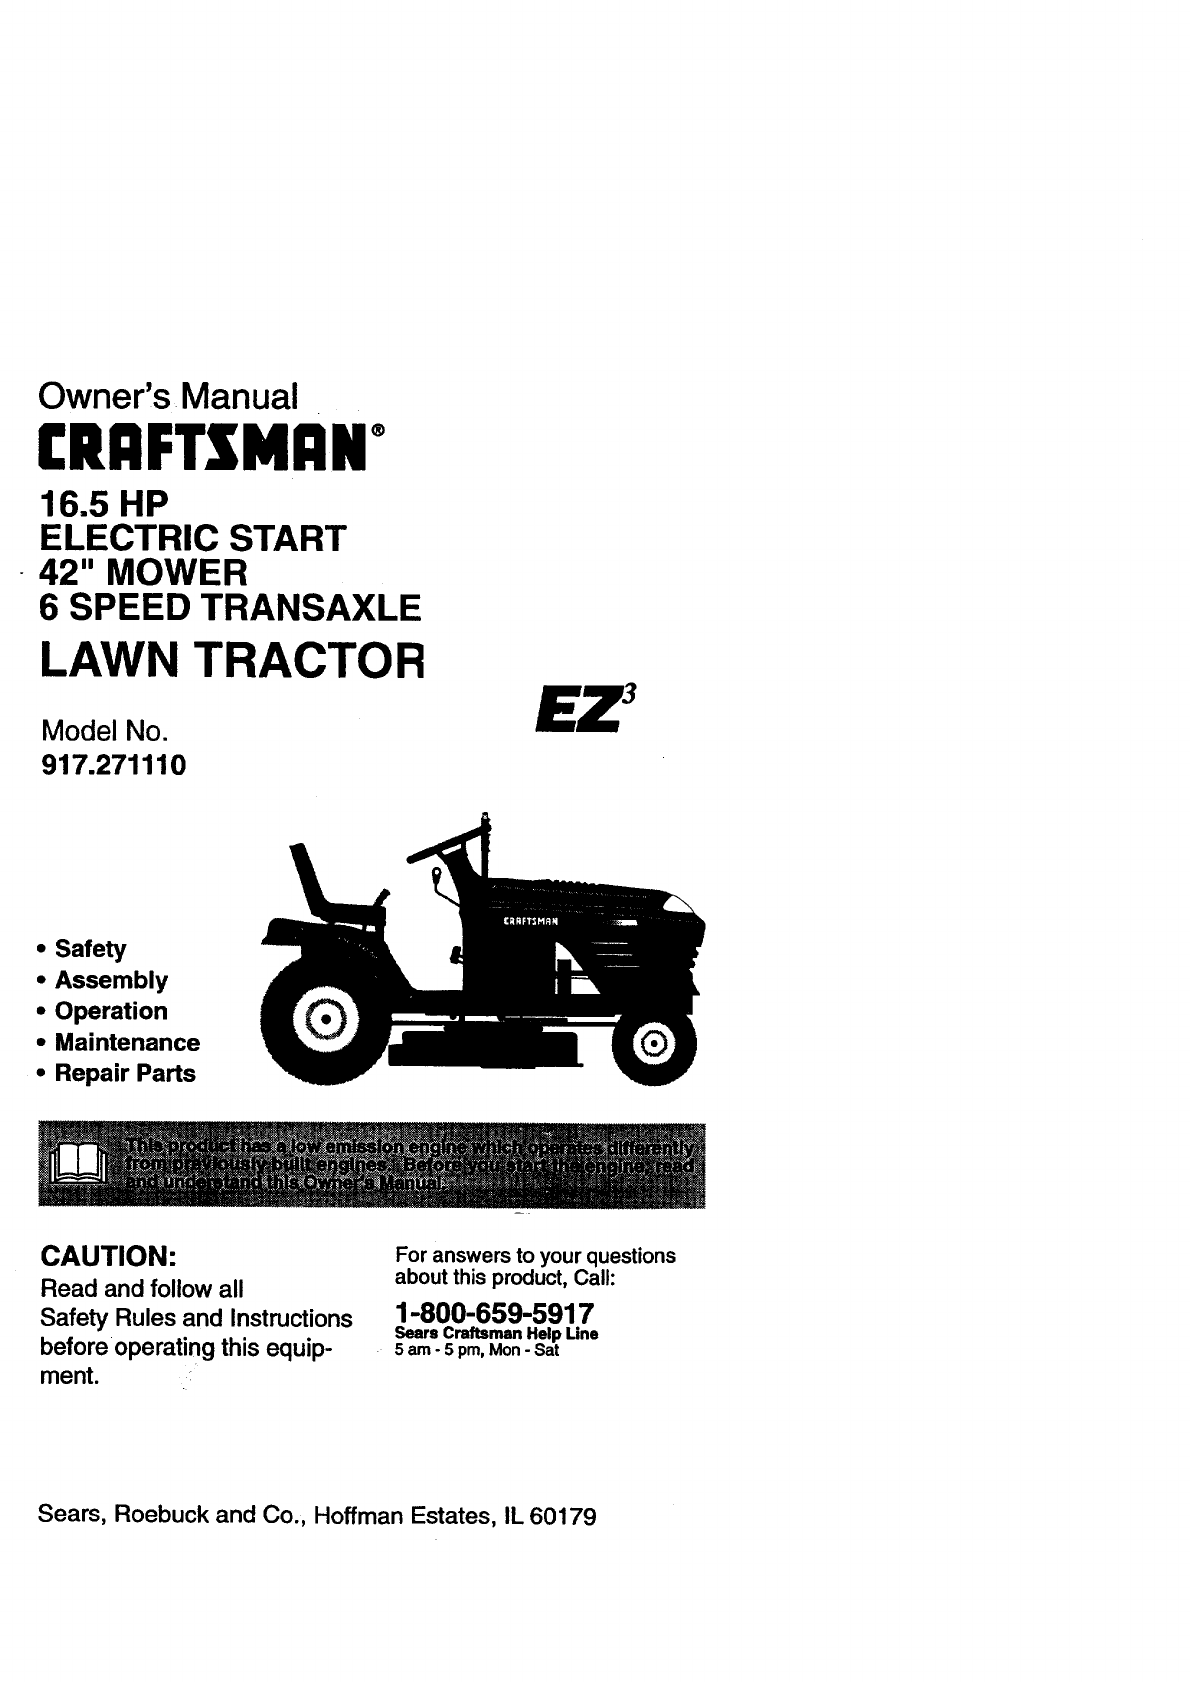 Sears Craftsman Manual Lawn Mower